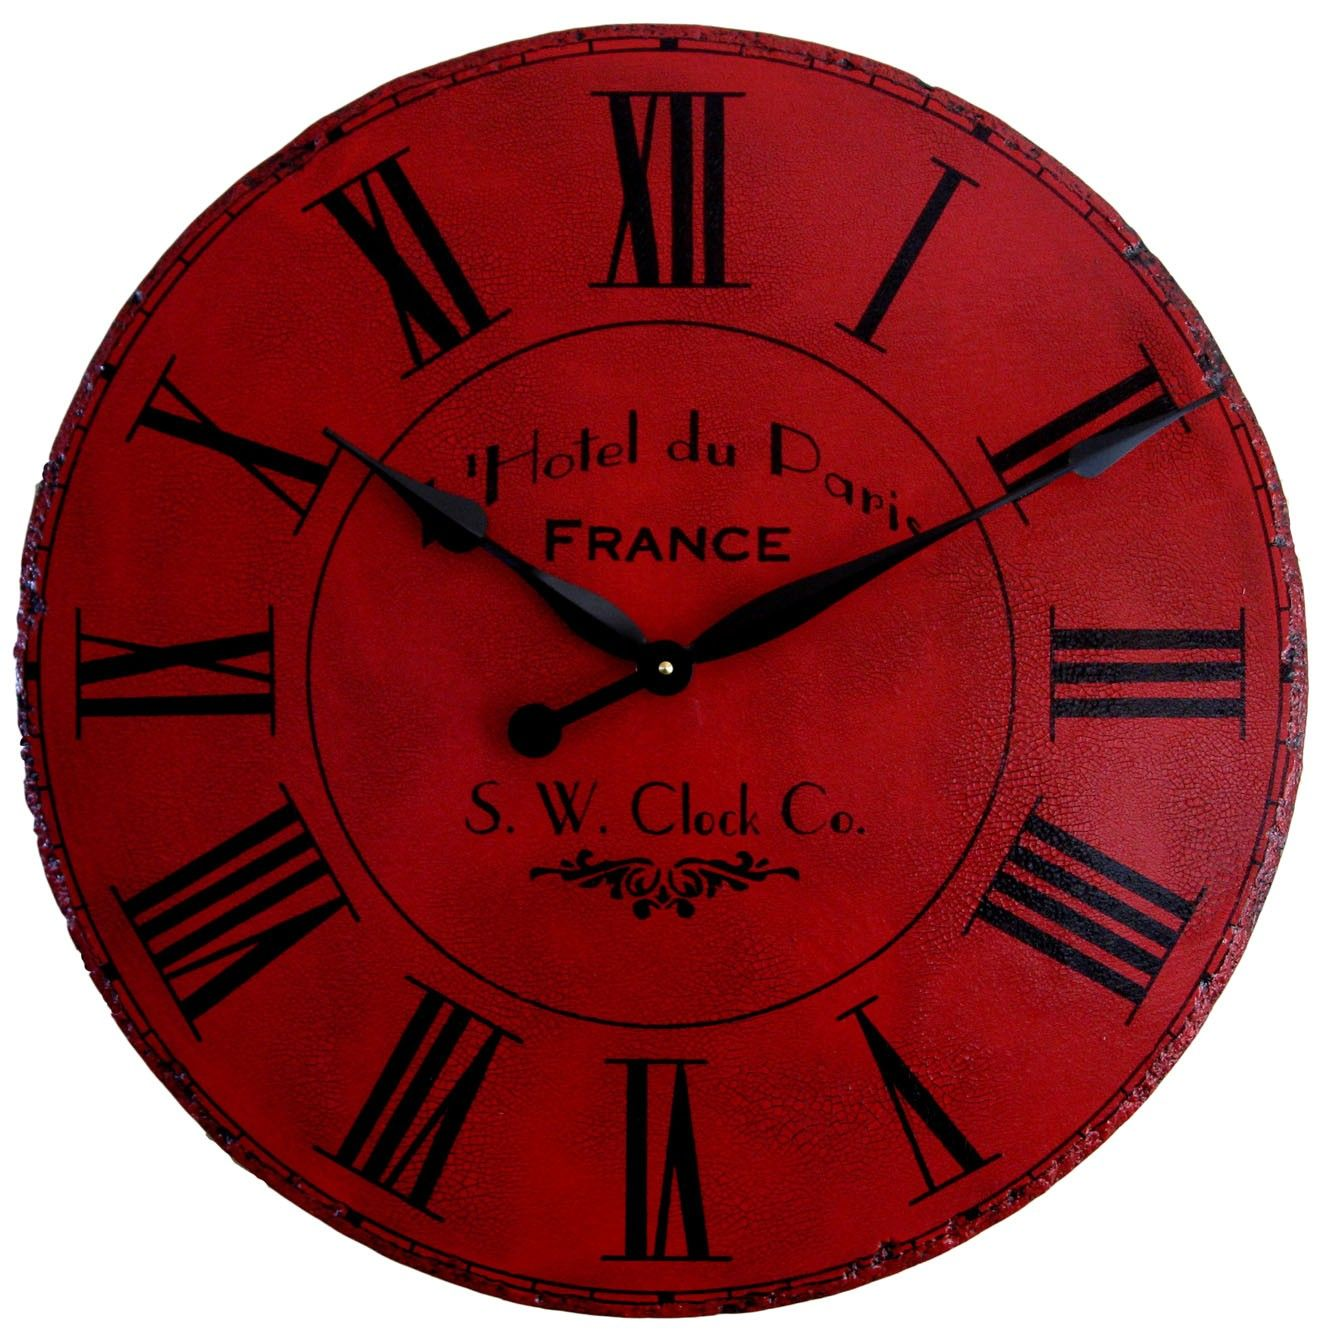 Inspiring Oversized Wall Clock For Accessories Ideas Maroon Round With Golden Hand And Roman Numeral